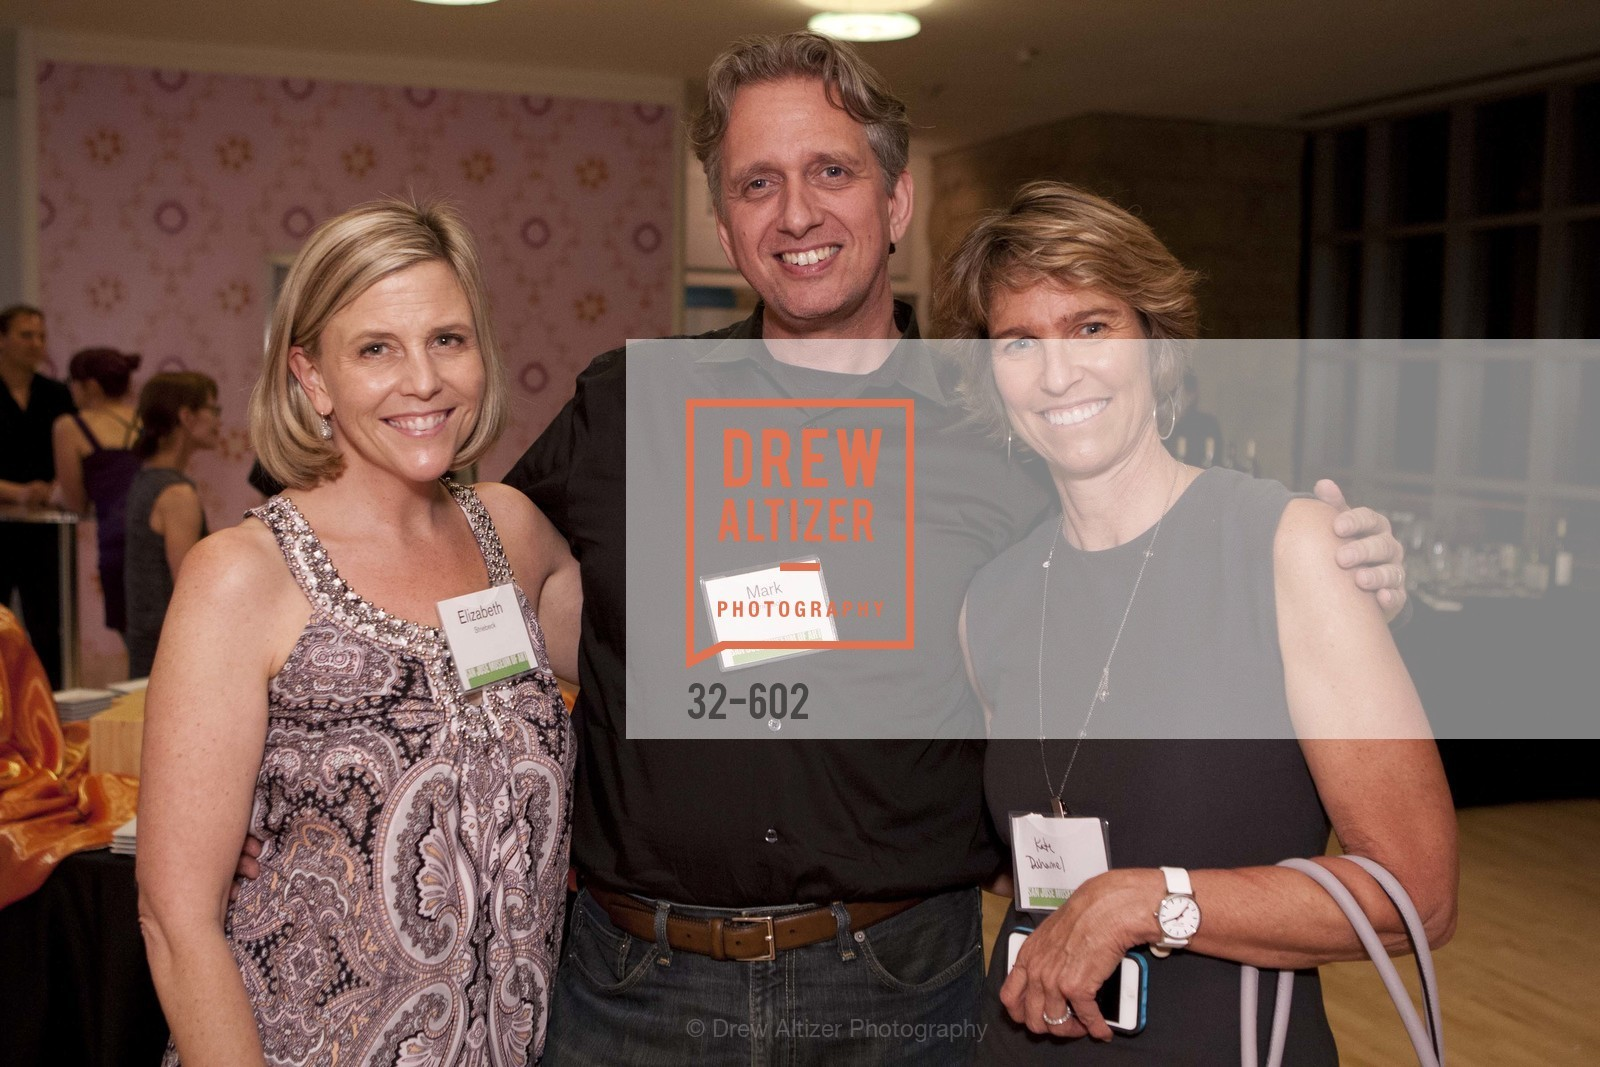 Elizabeth Striebeck, Mark Striebeck, Kate Duhamel, SAN JOSE MUSEUM OF ART Fall Reception Opening, US, October 9th, 2014,Drew Altizer, Drew Altizer Photography, full-service agency, private events, San Francisco photographer, photographer california